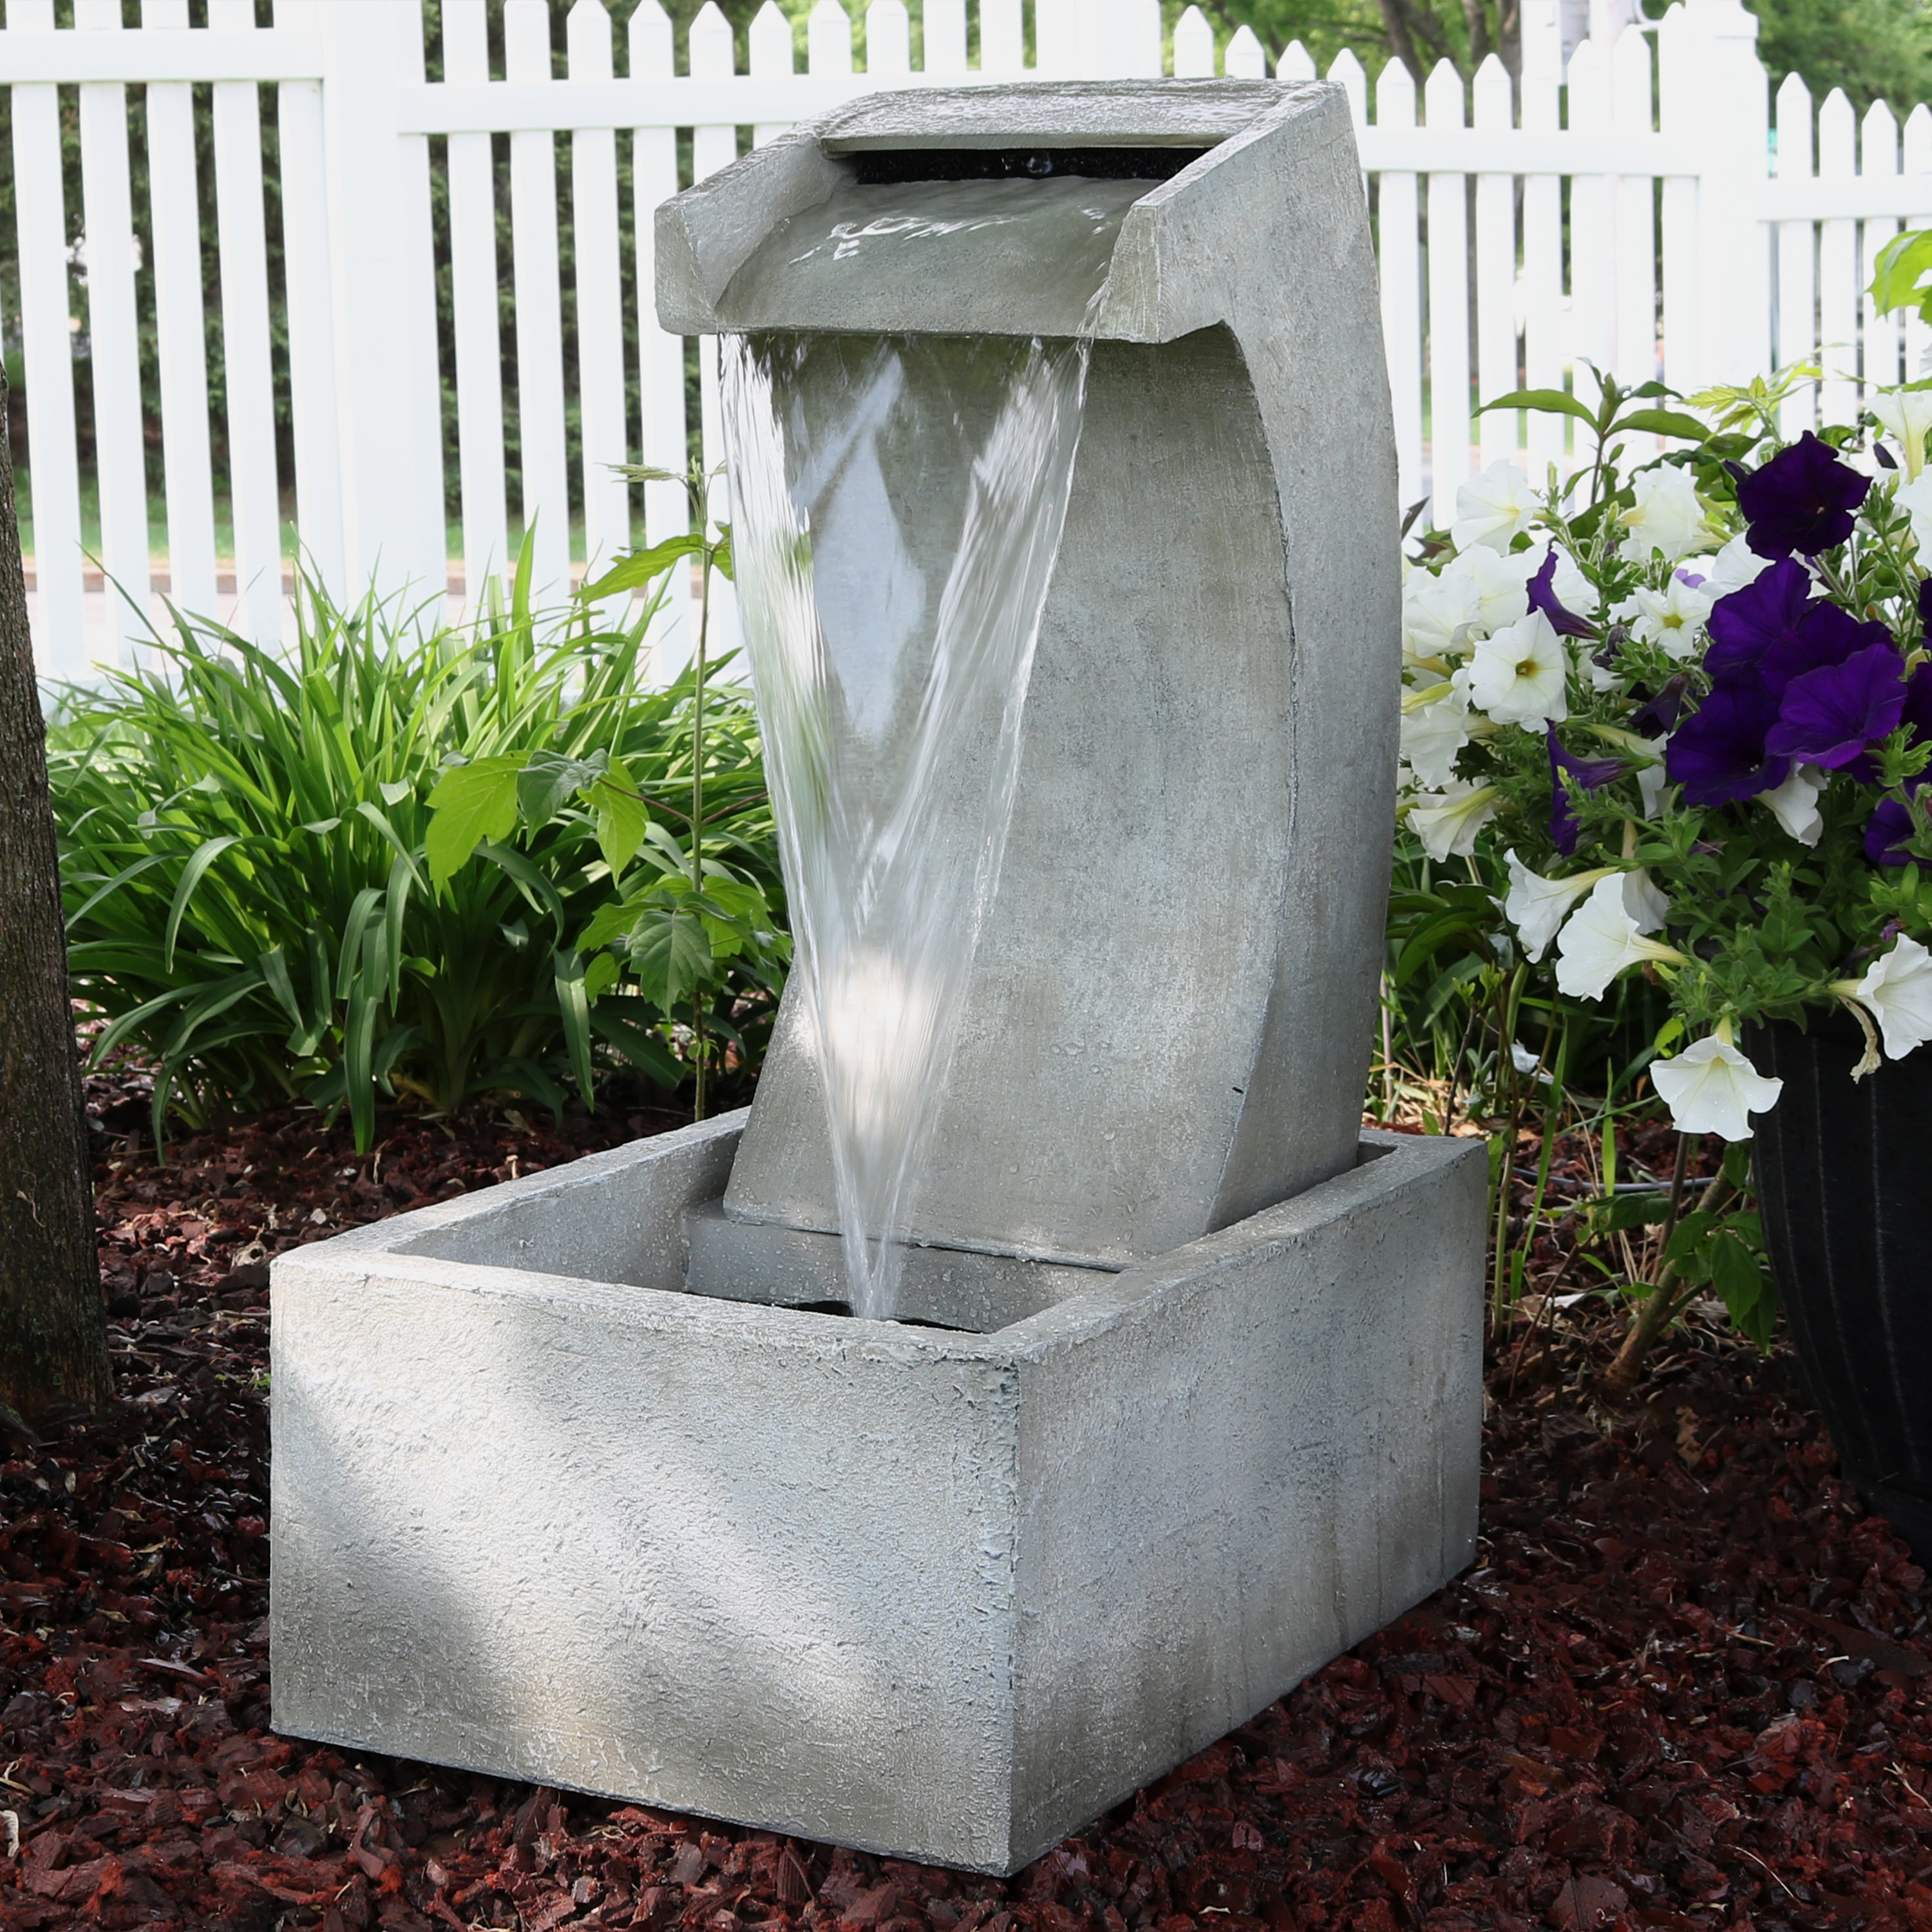 Sunnydaze Modern Arched Outdoor Waterfall Fountain, Patio and Backyard Water Feature, 24-Inch Tall